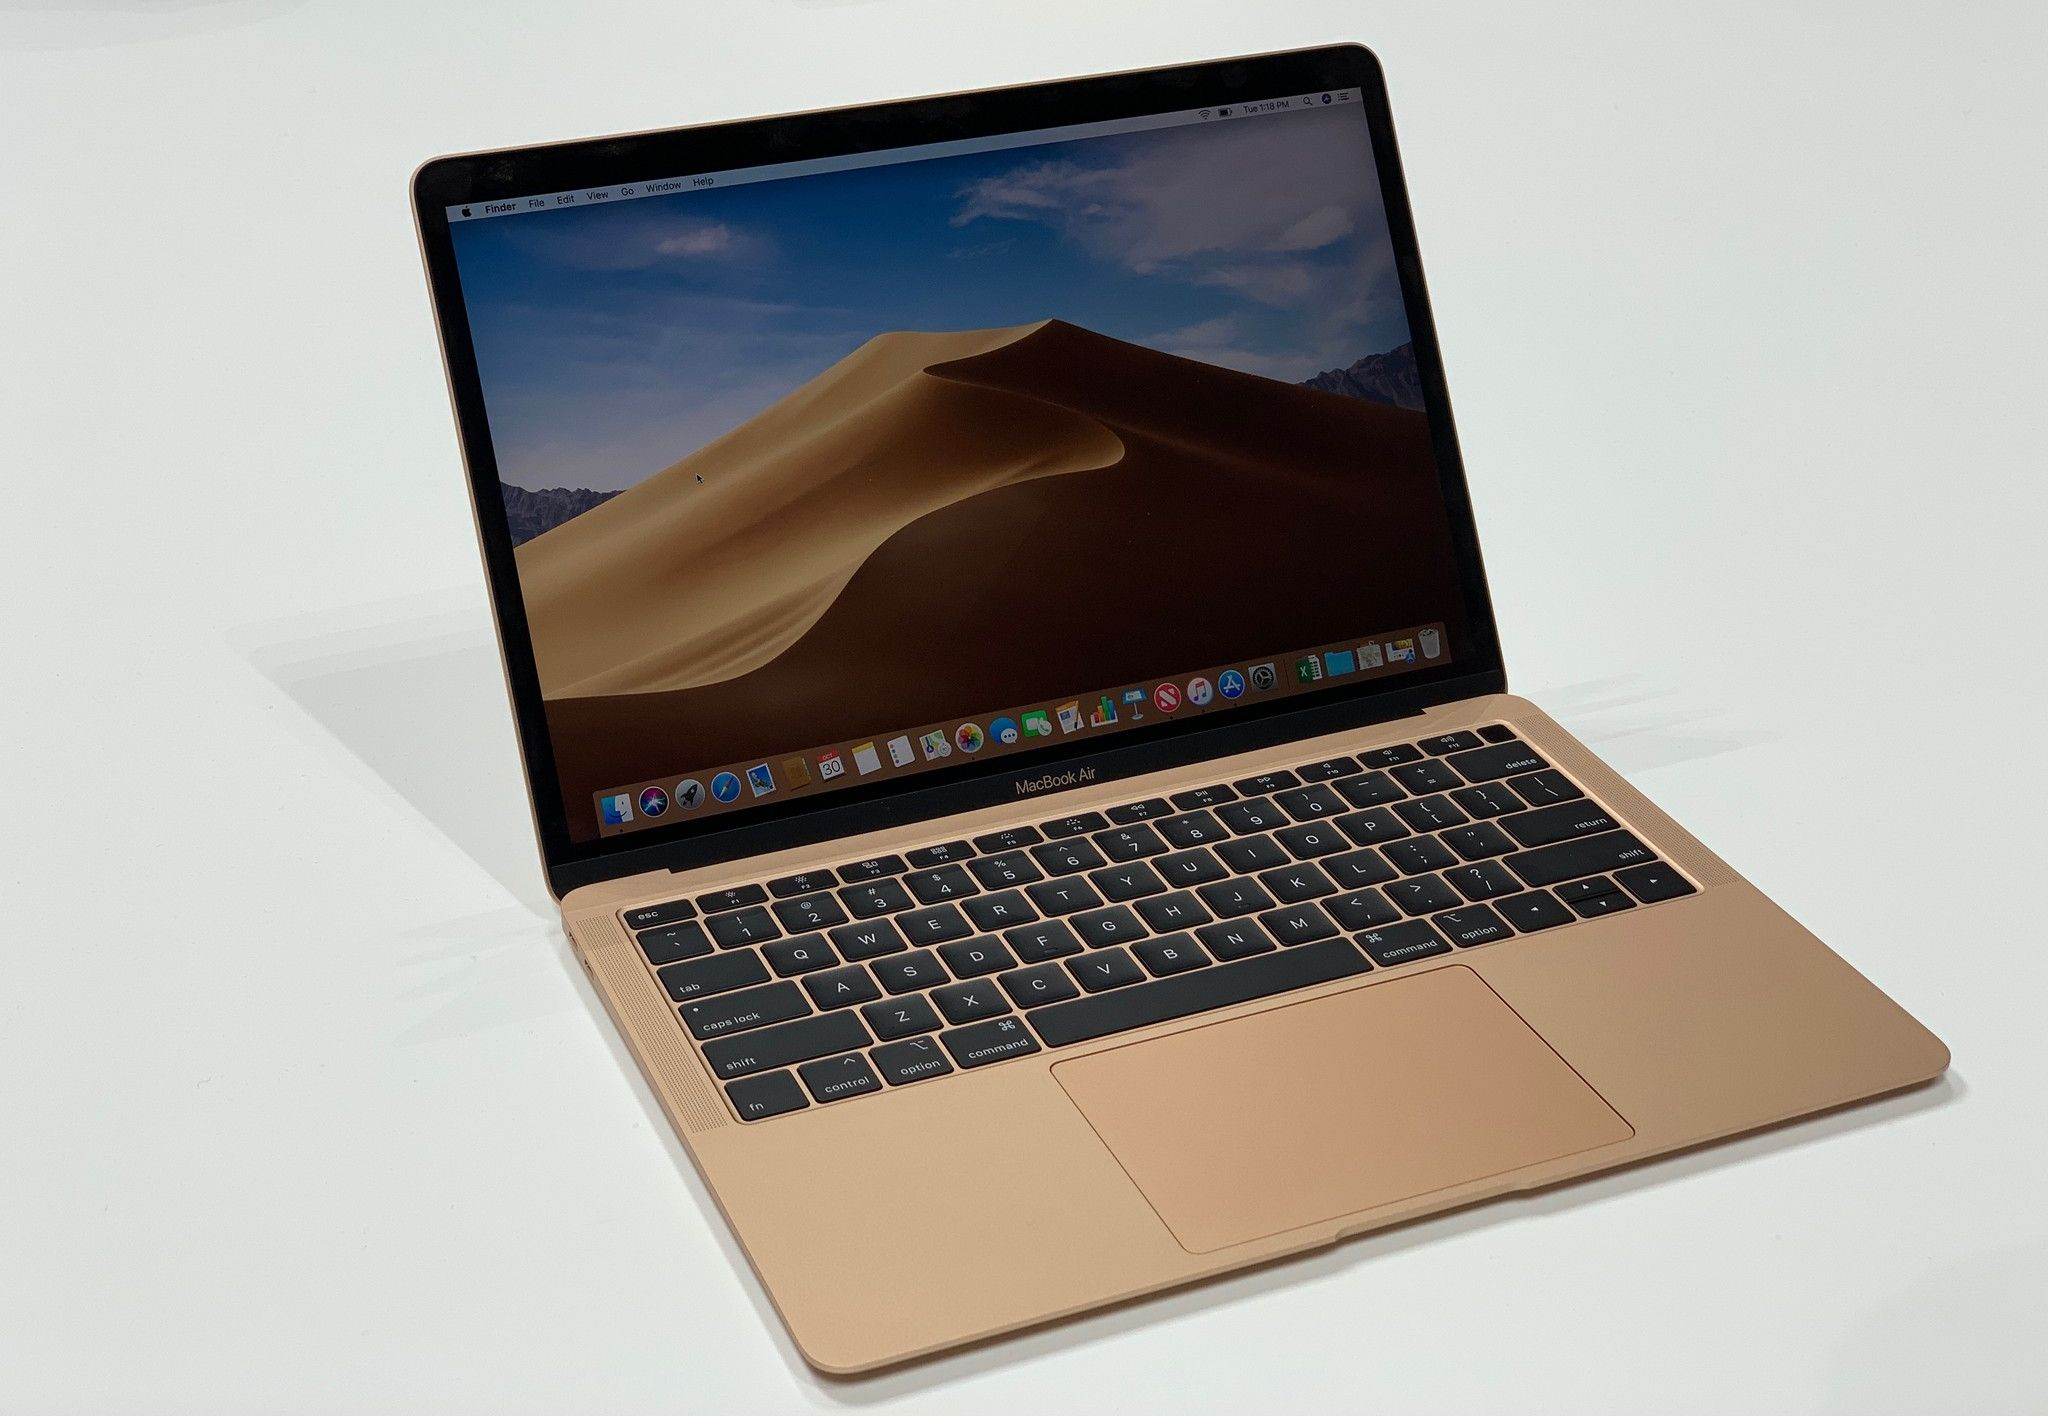 macbook-air-2018-hero-02.jpg